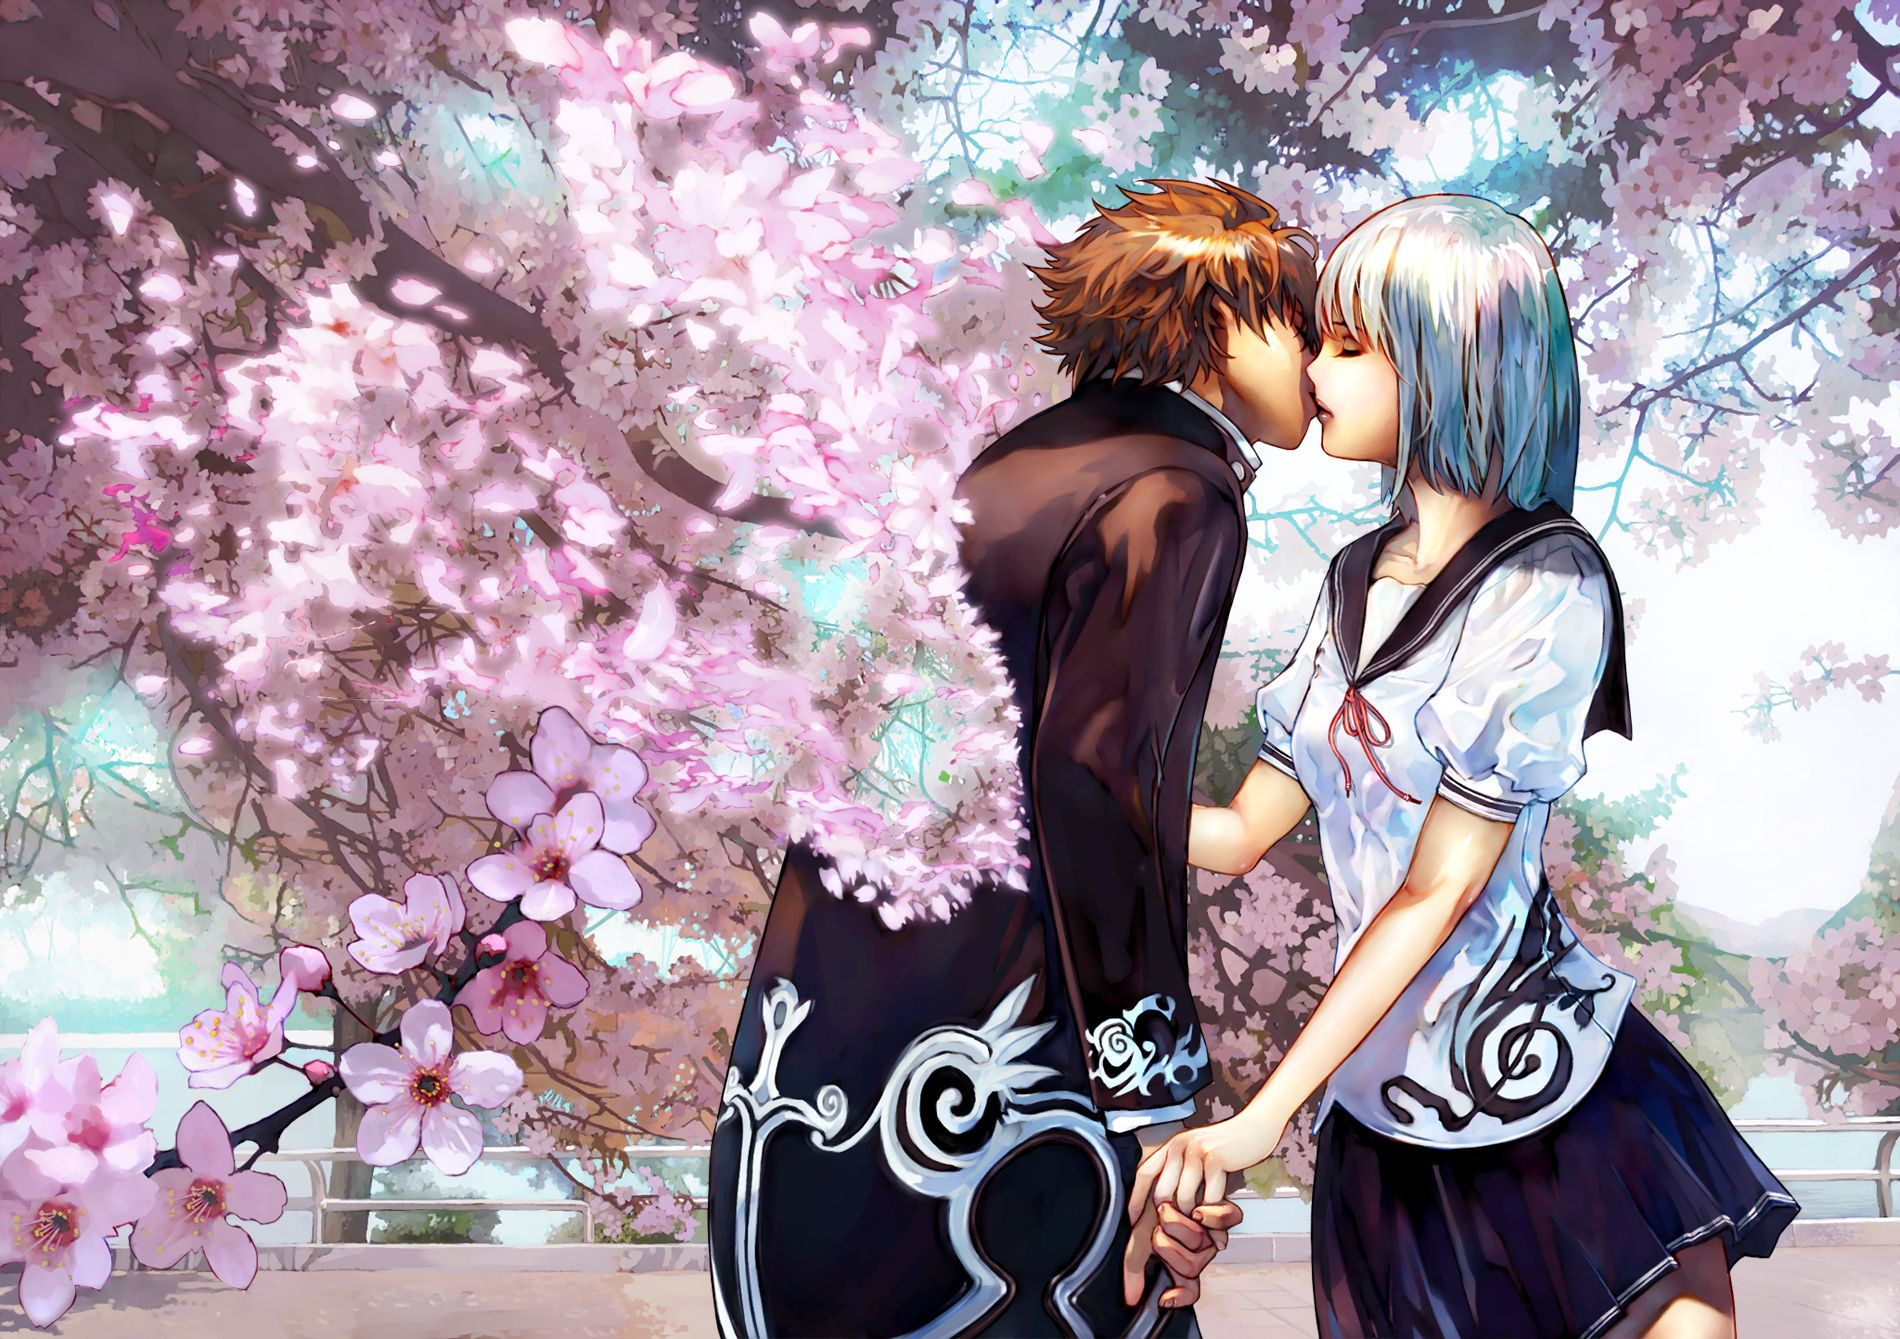 Anime Love Hd Wallpaper Anime Manga Pinterest Anime Couples